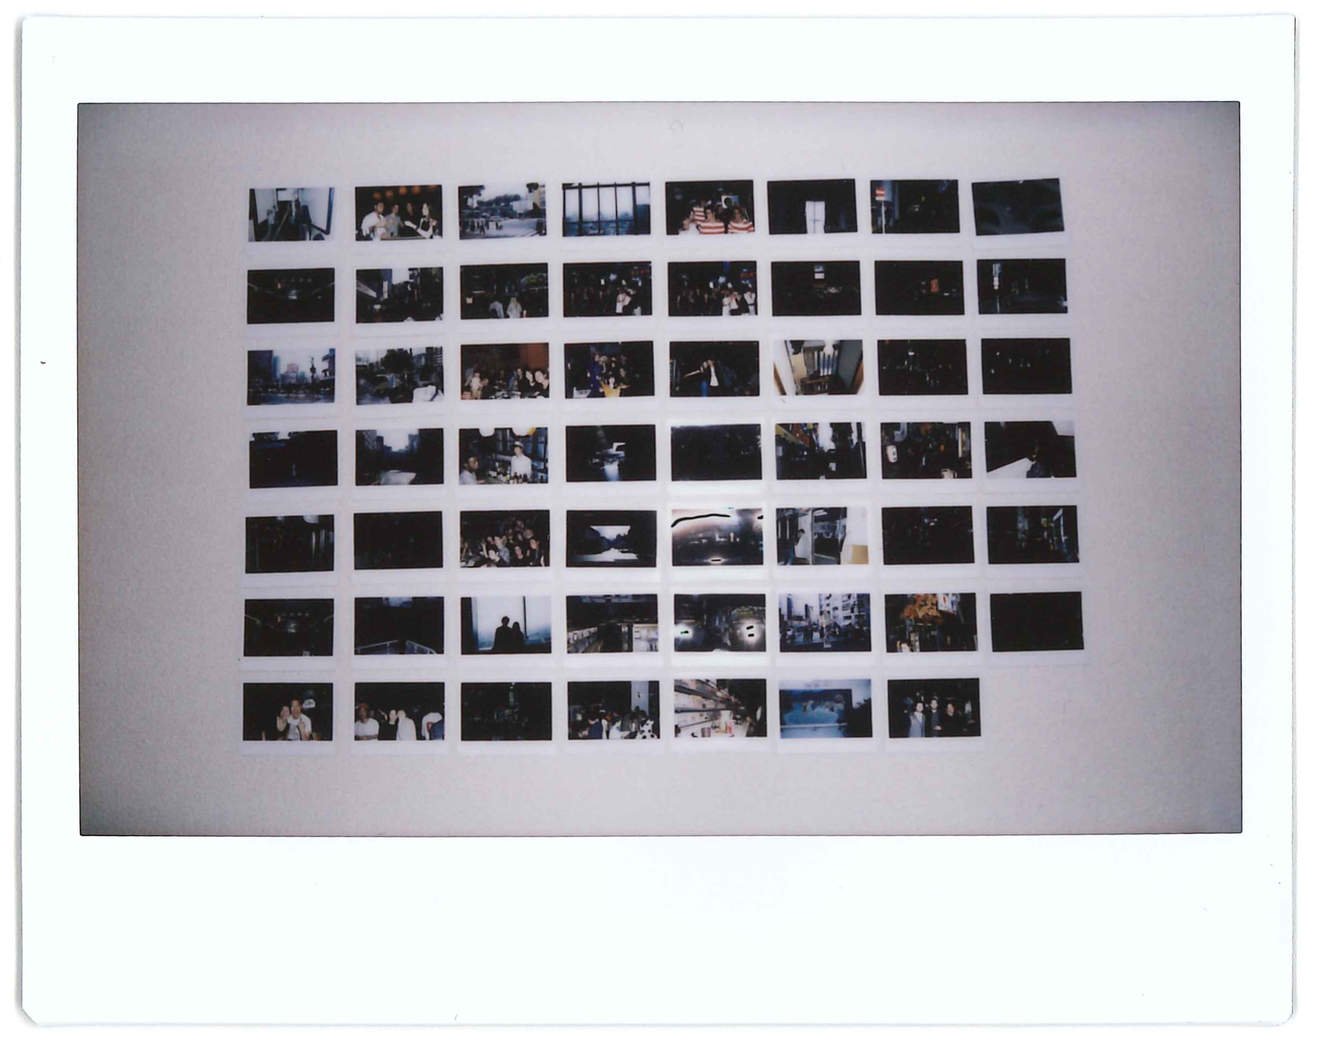 "Instant photo for Day 49 of ""A Year in an Instant"" by Nuno Coelho Santos"